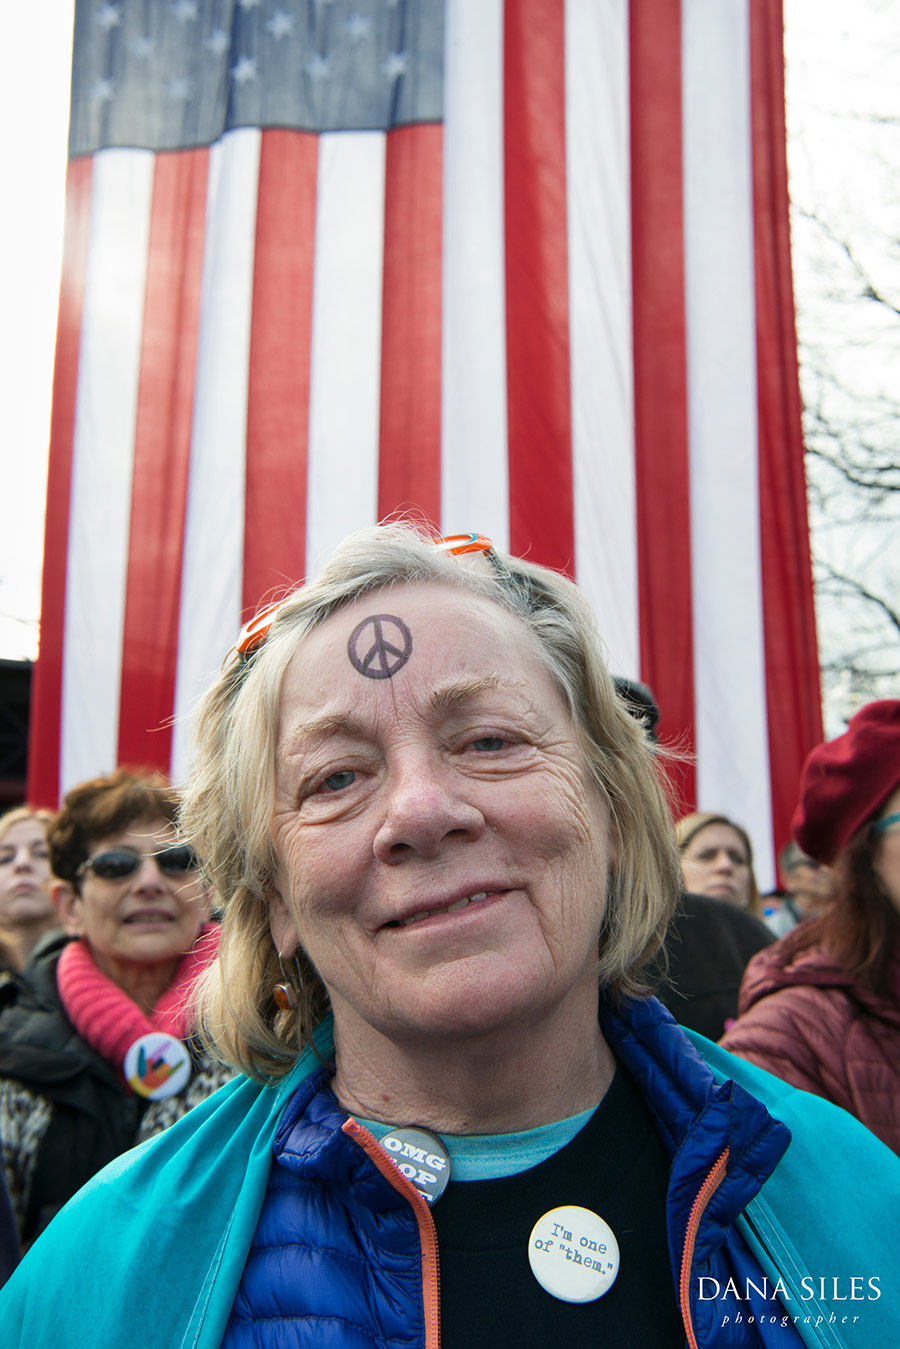 boston-womens-march-of-america-2017-dana-siles-07